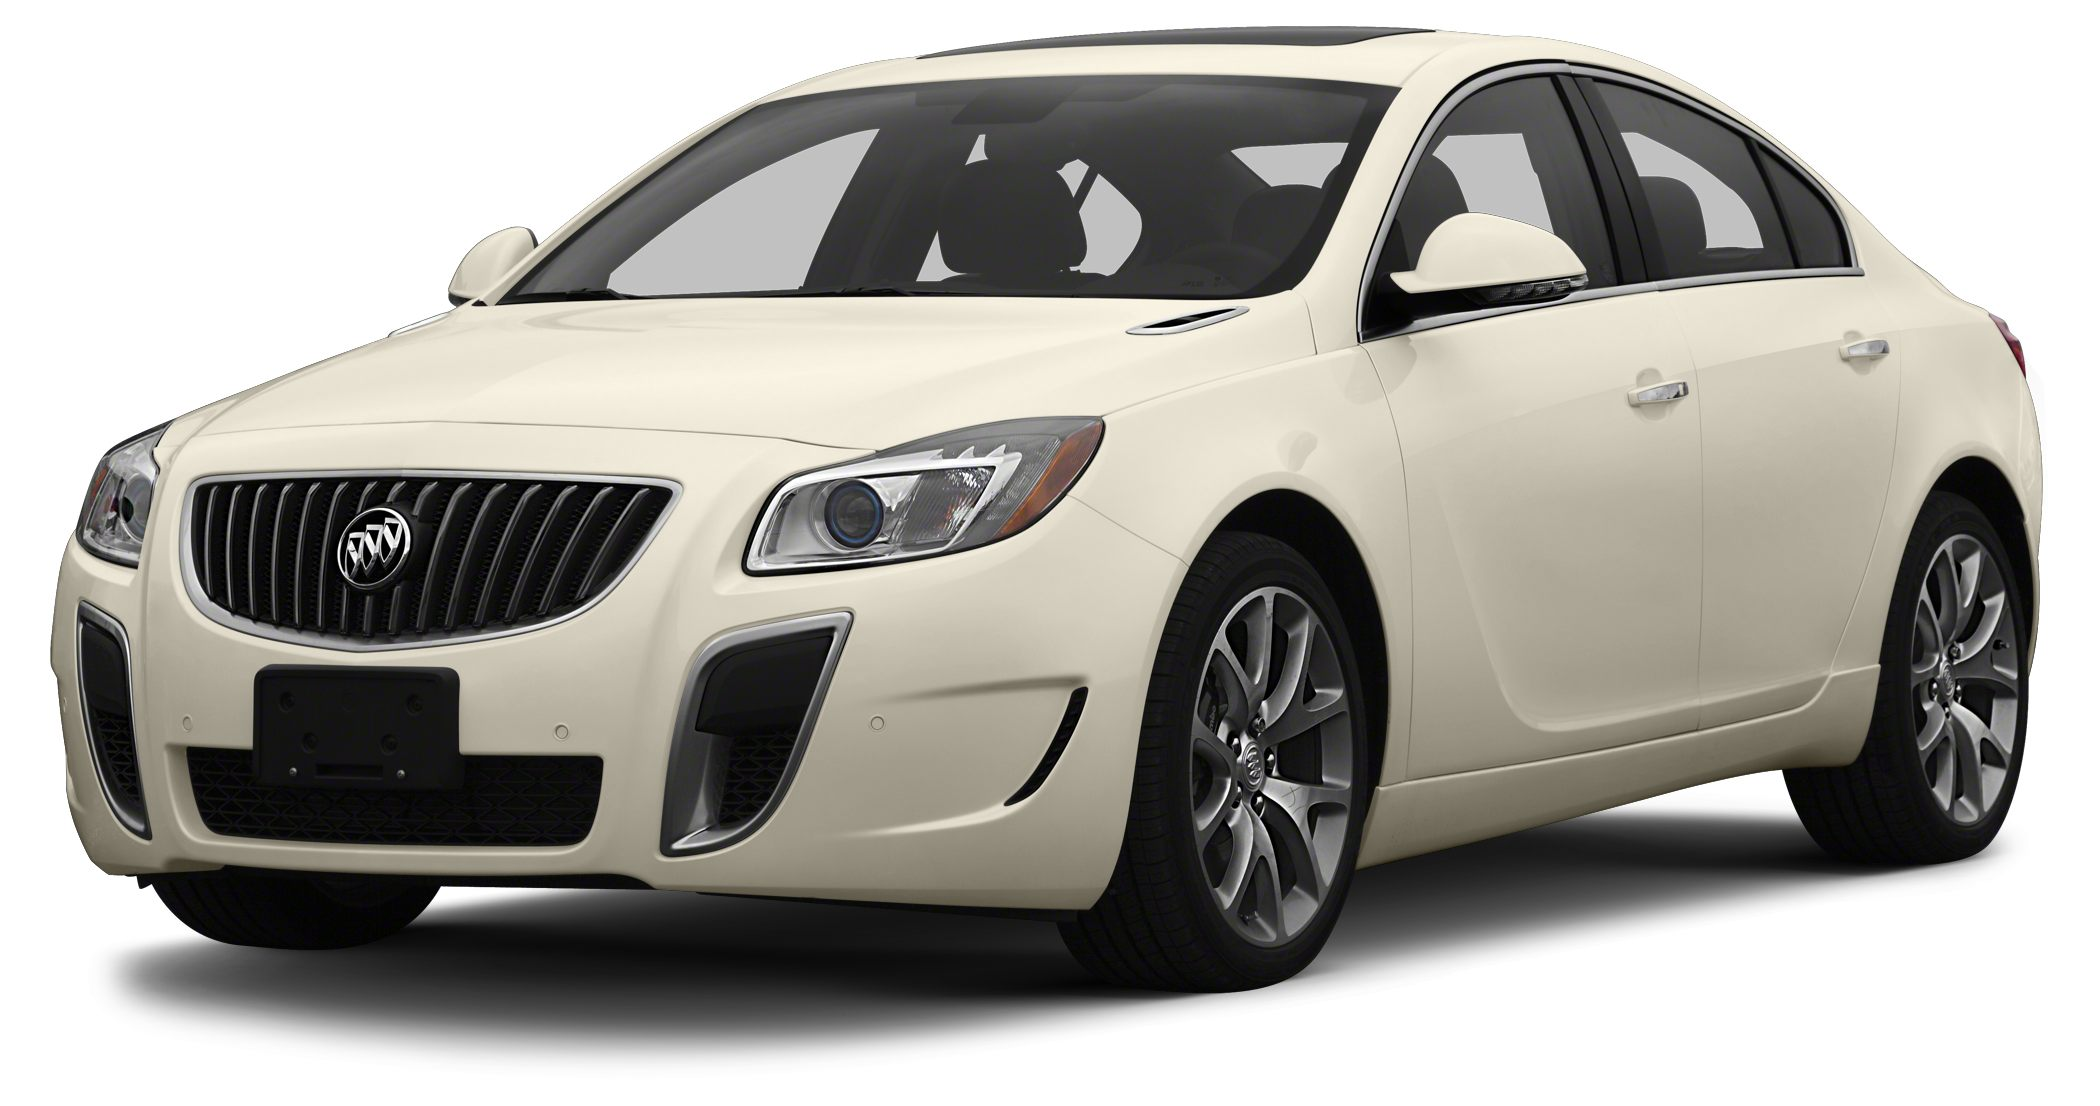 2013 Buick Regal GS CARFAX 1-Owner LOW MILES - 26596 FUEL EFFICIENT 29 MPG Hwy18 MPG City Hea